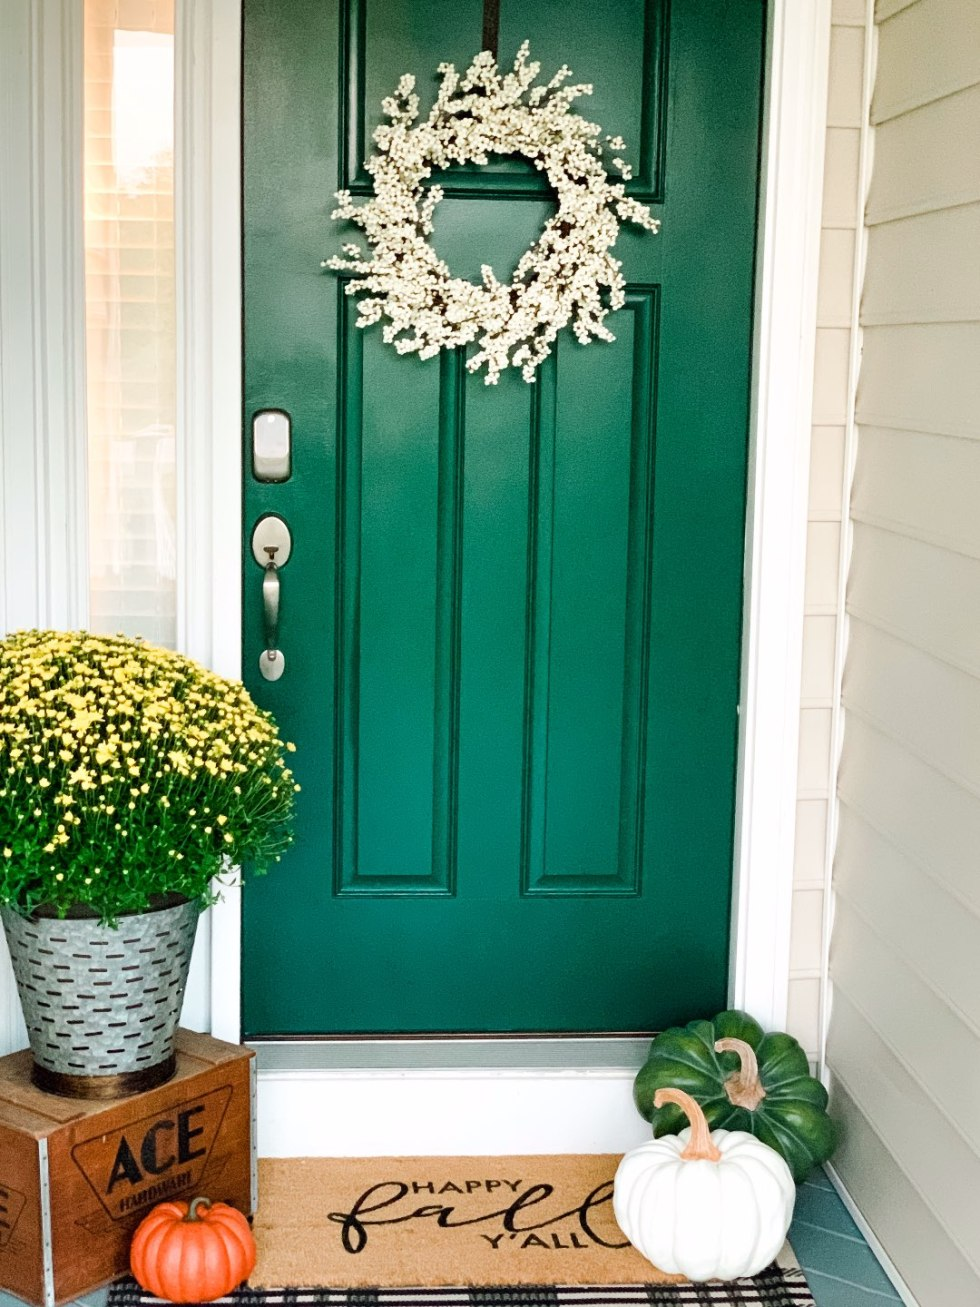 Inspiration Board: Fall Front Porch Ideas by popular North Carolina life and style blog, I'm Fixin' To: image of a front porch decorated with a white wreath, potted yellow mums, and pumpkins.